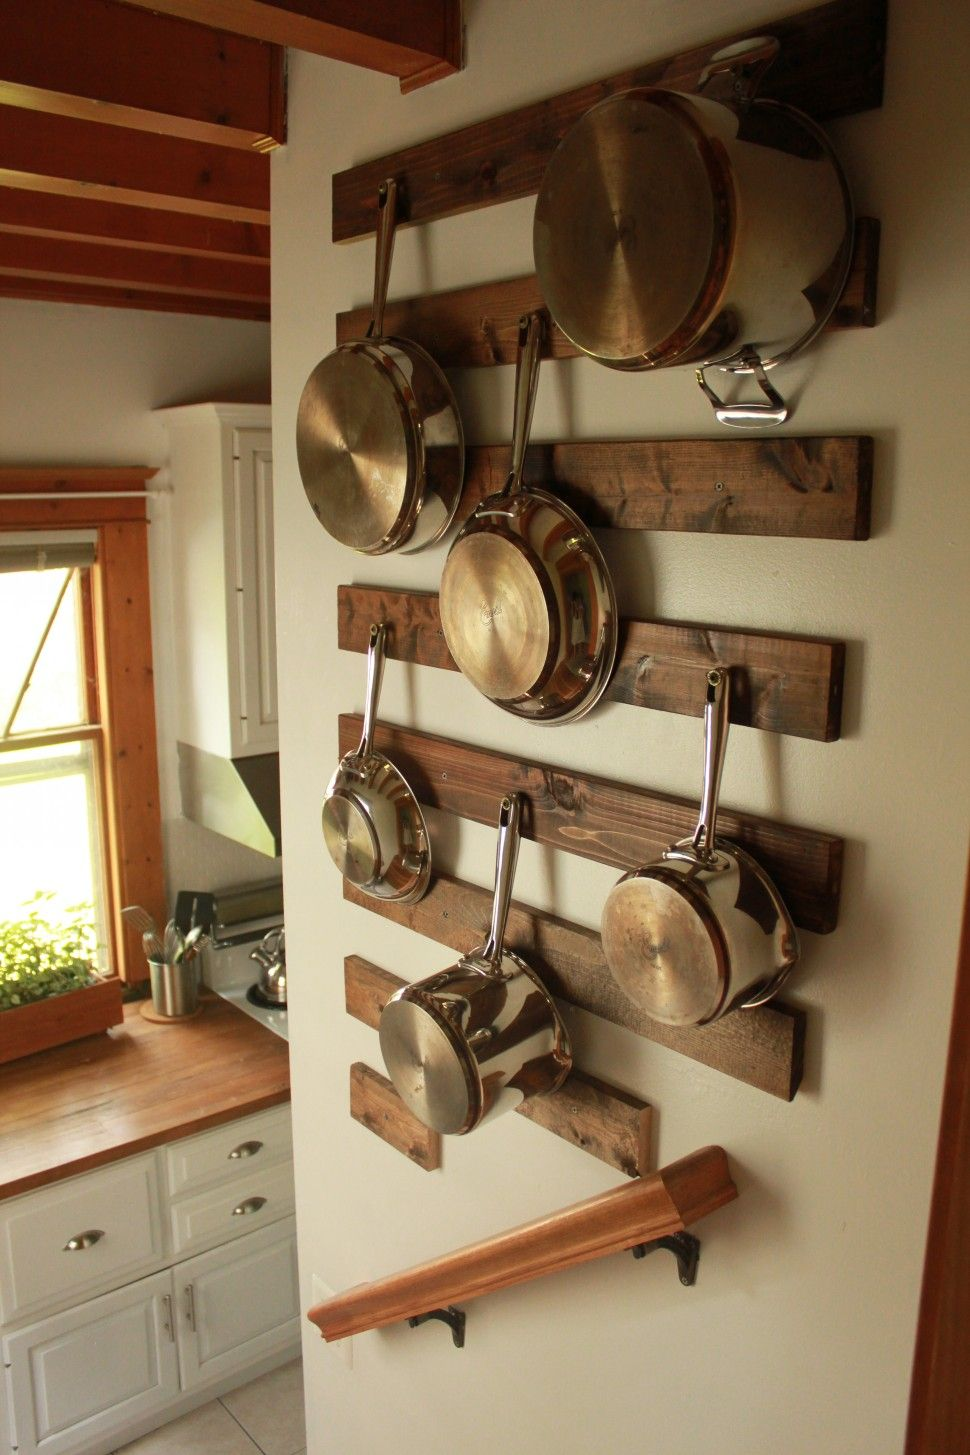 Kitchen Kitchen Hanging Rack Ideas With Stainless Steel Sauce Pot